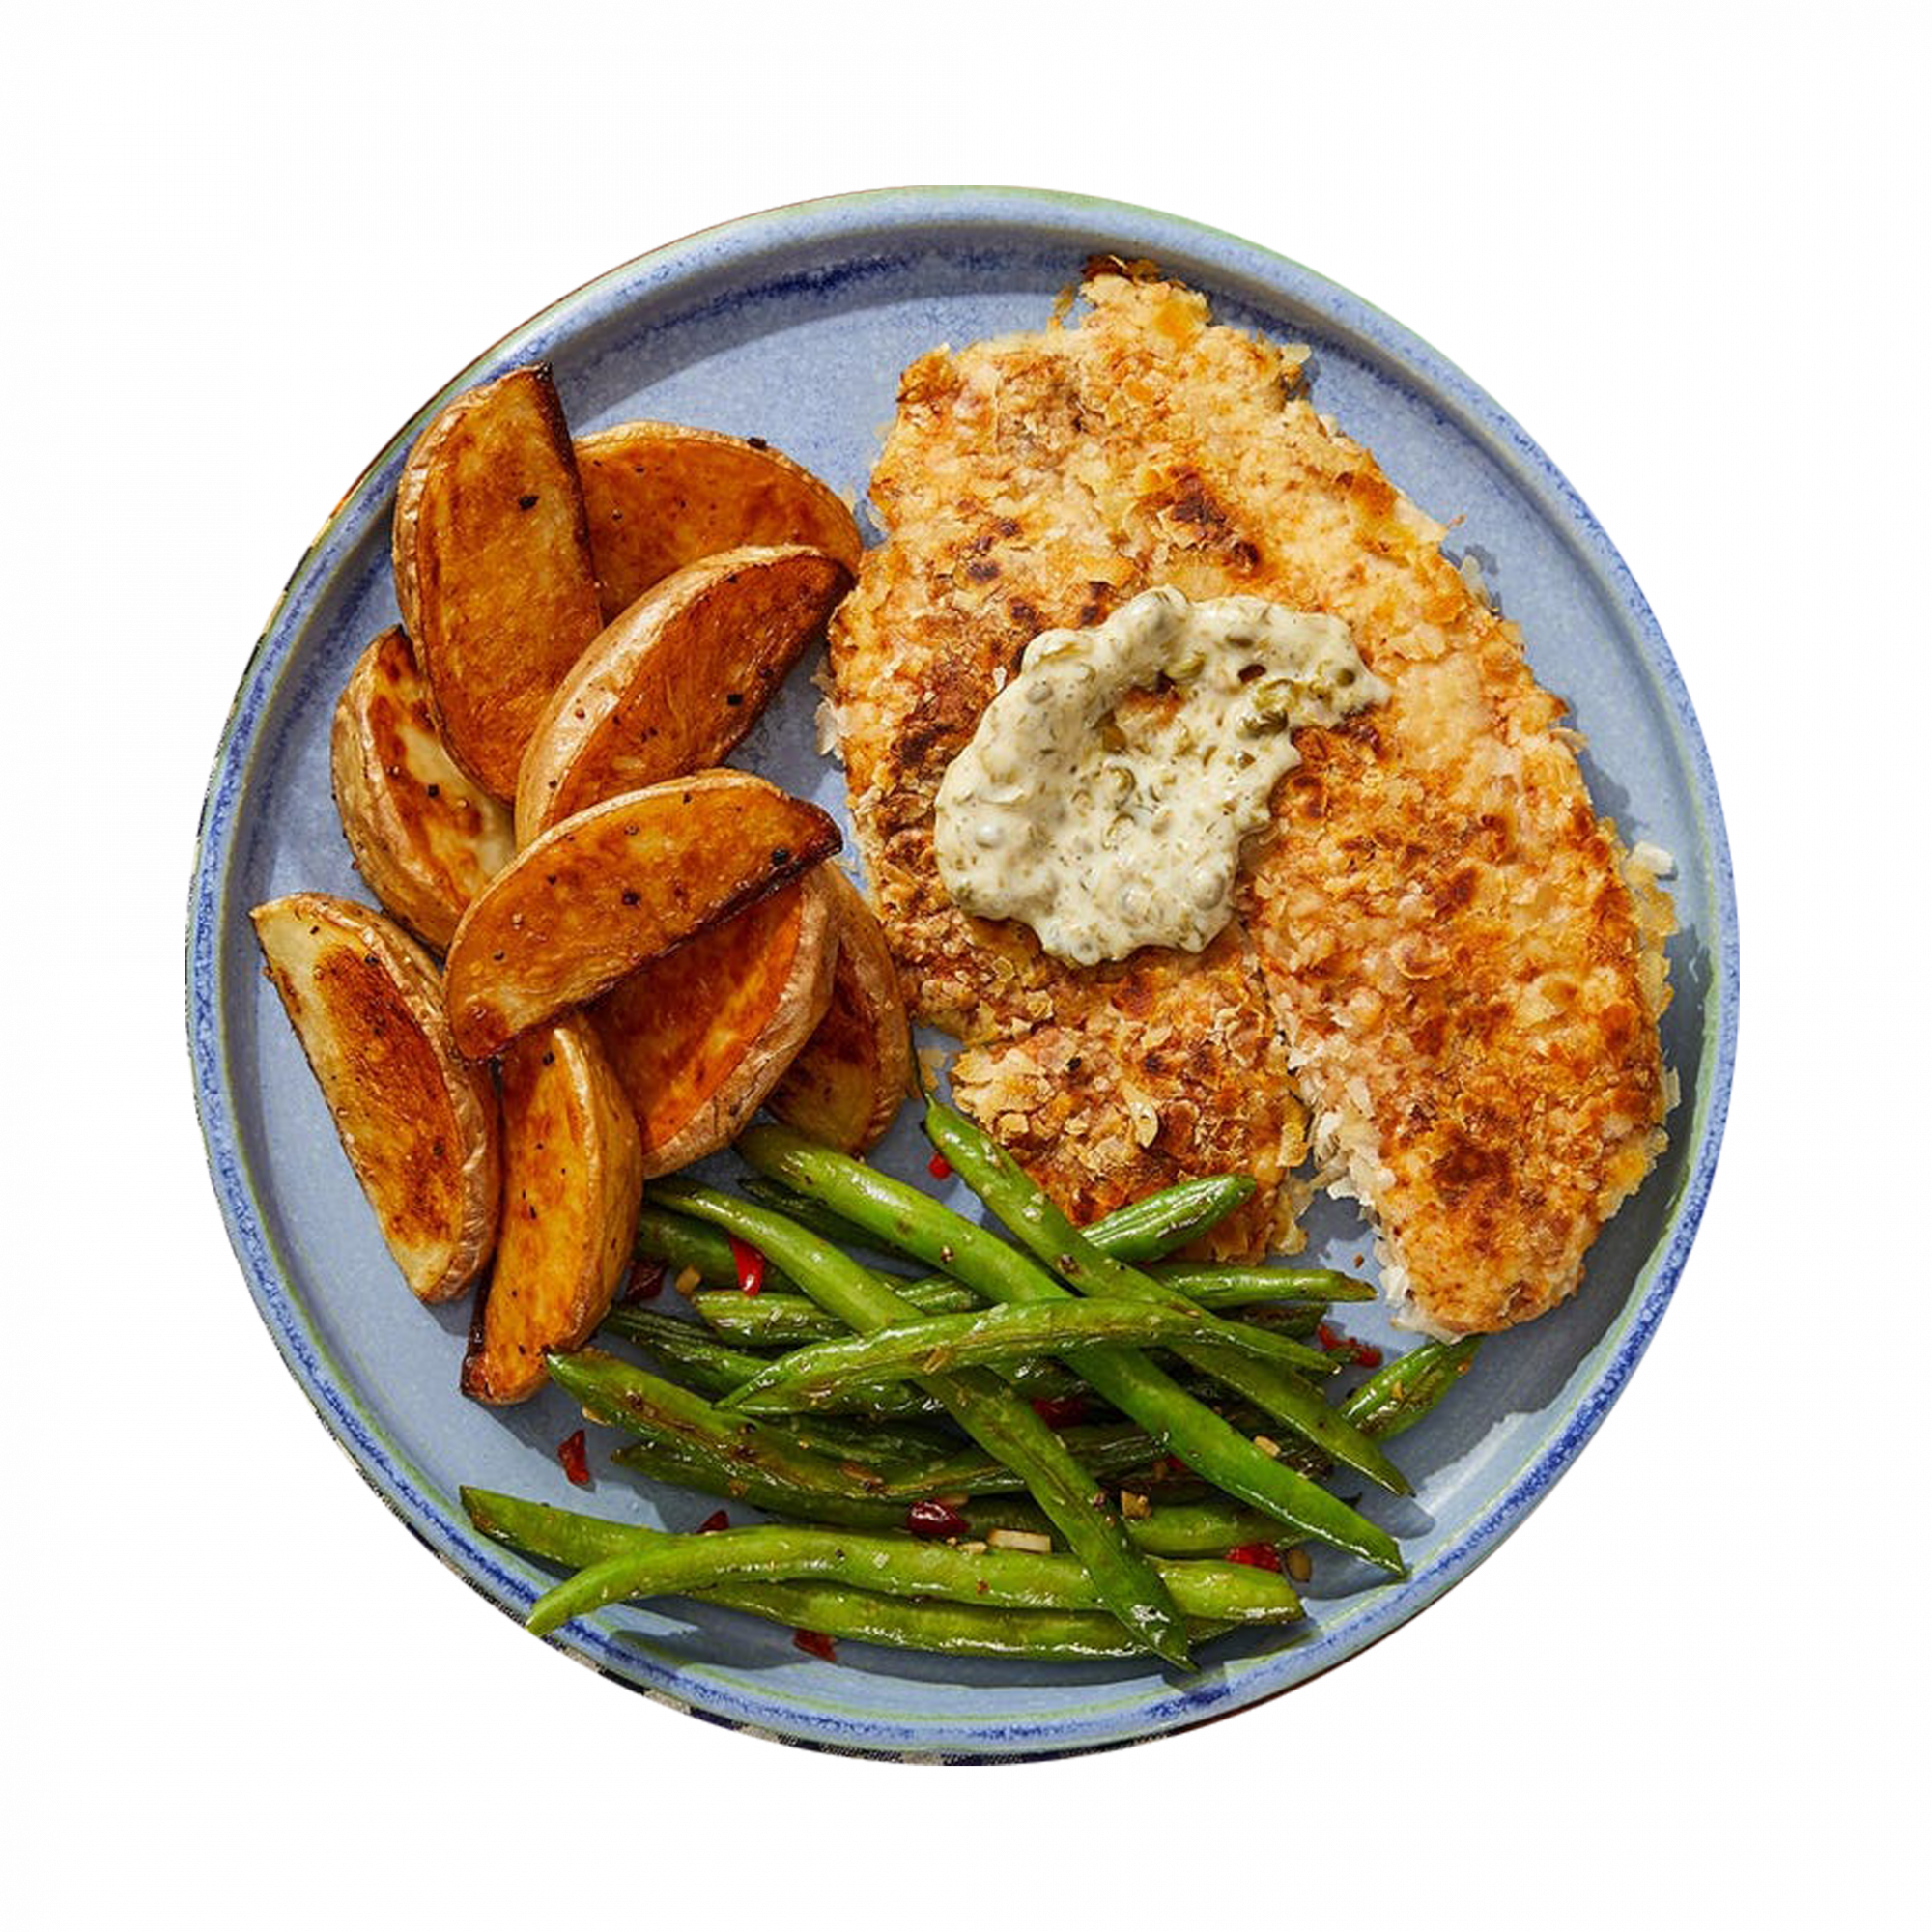 Baked Crispy Tilapia & Caper Mayo with Salt & Vinegar Potatoes and French Beans